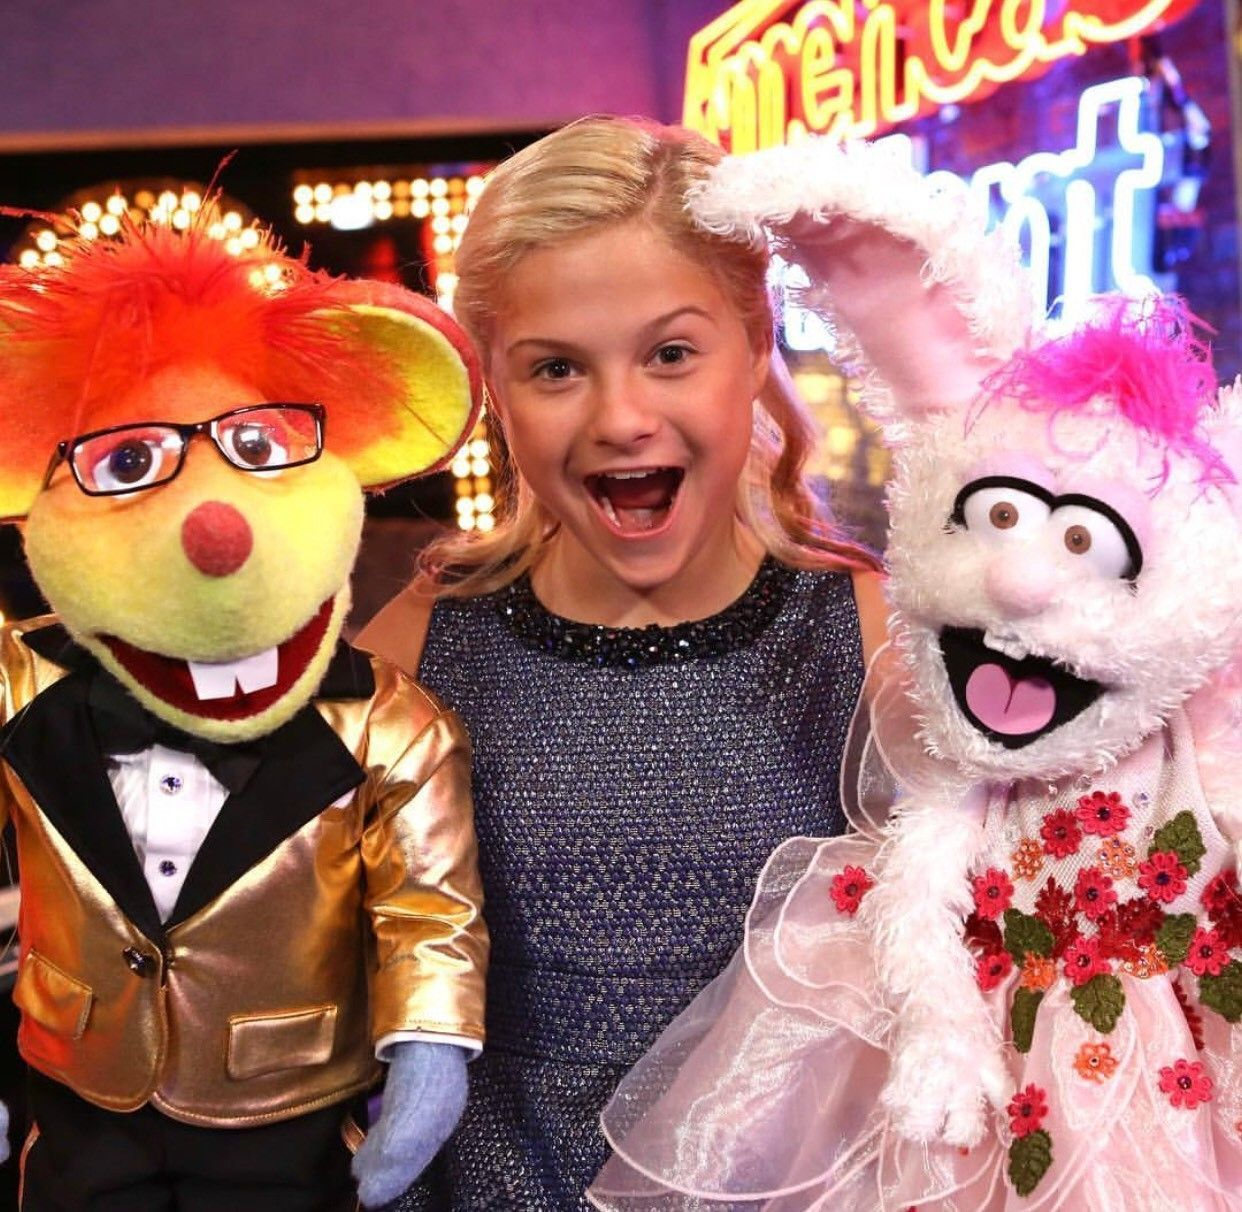 America's Got Talent winner Darci Lynne added to Montana State Fair lineup